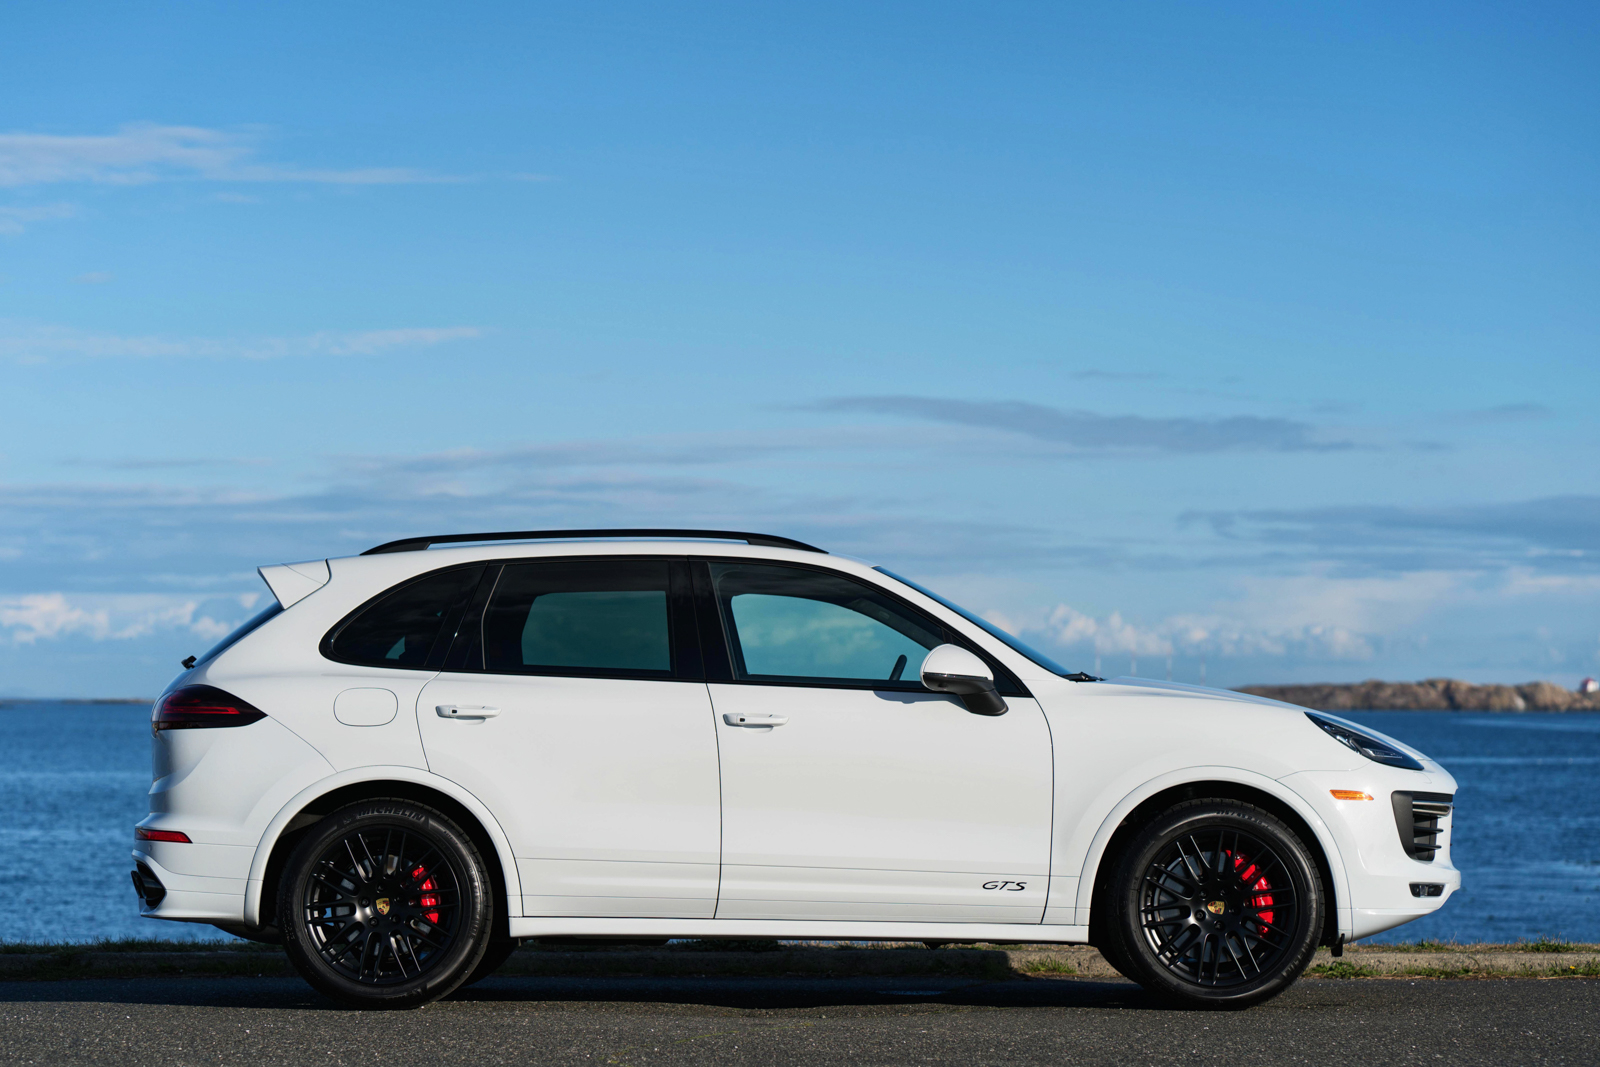 2017 Porsche Cayenne GTS for sale